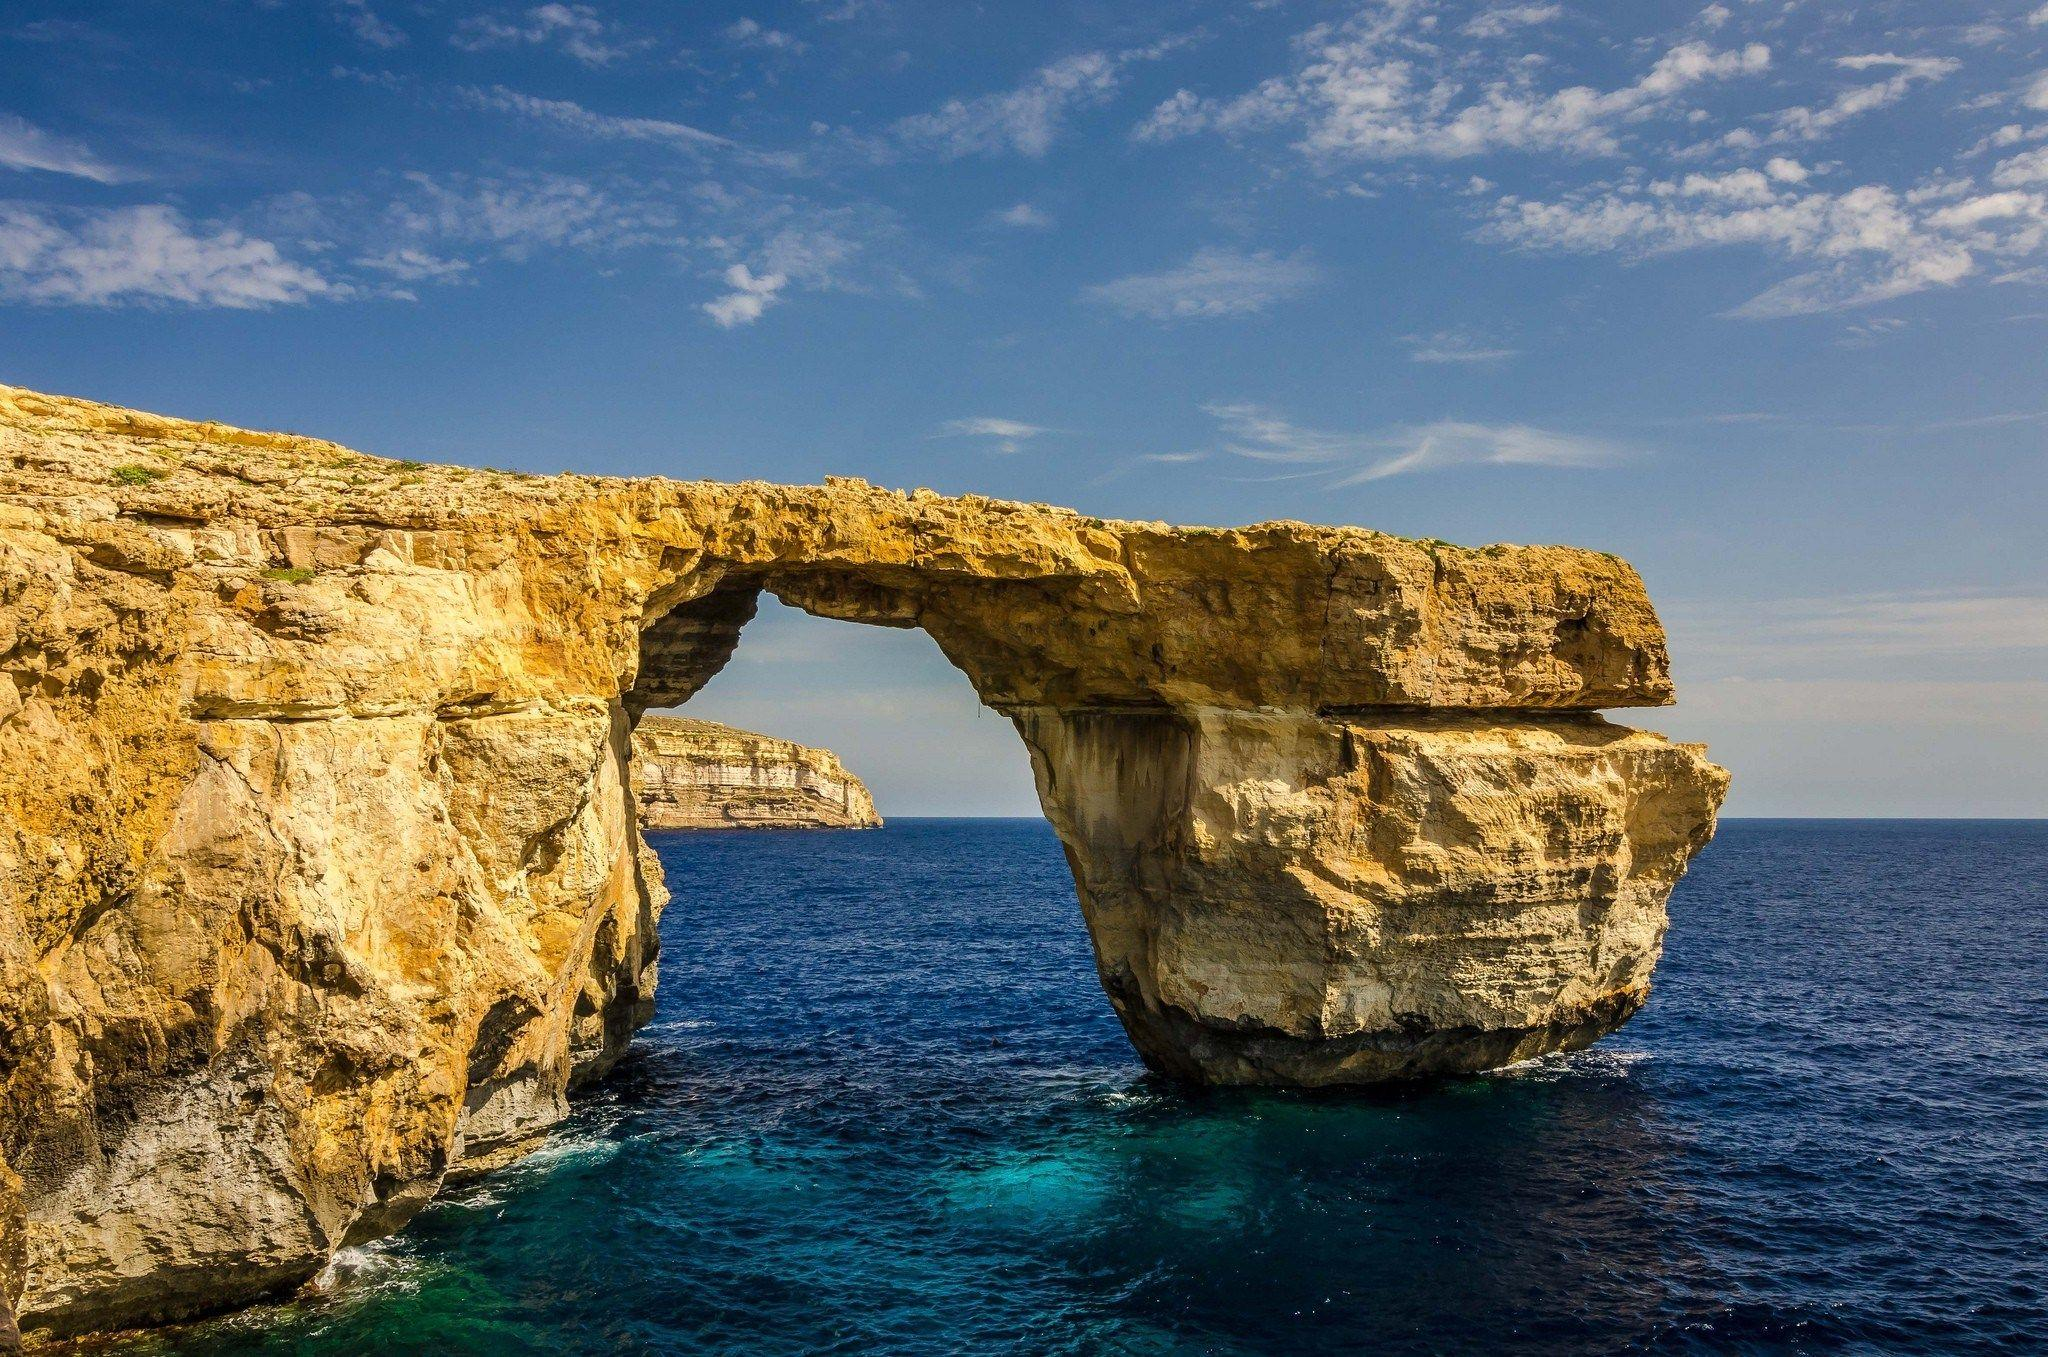 hd malta wallpapers | ololoshka | Pinterest | Malta and Wallpapers